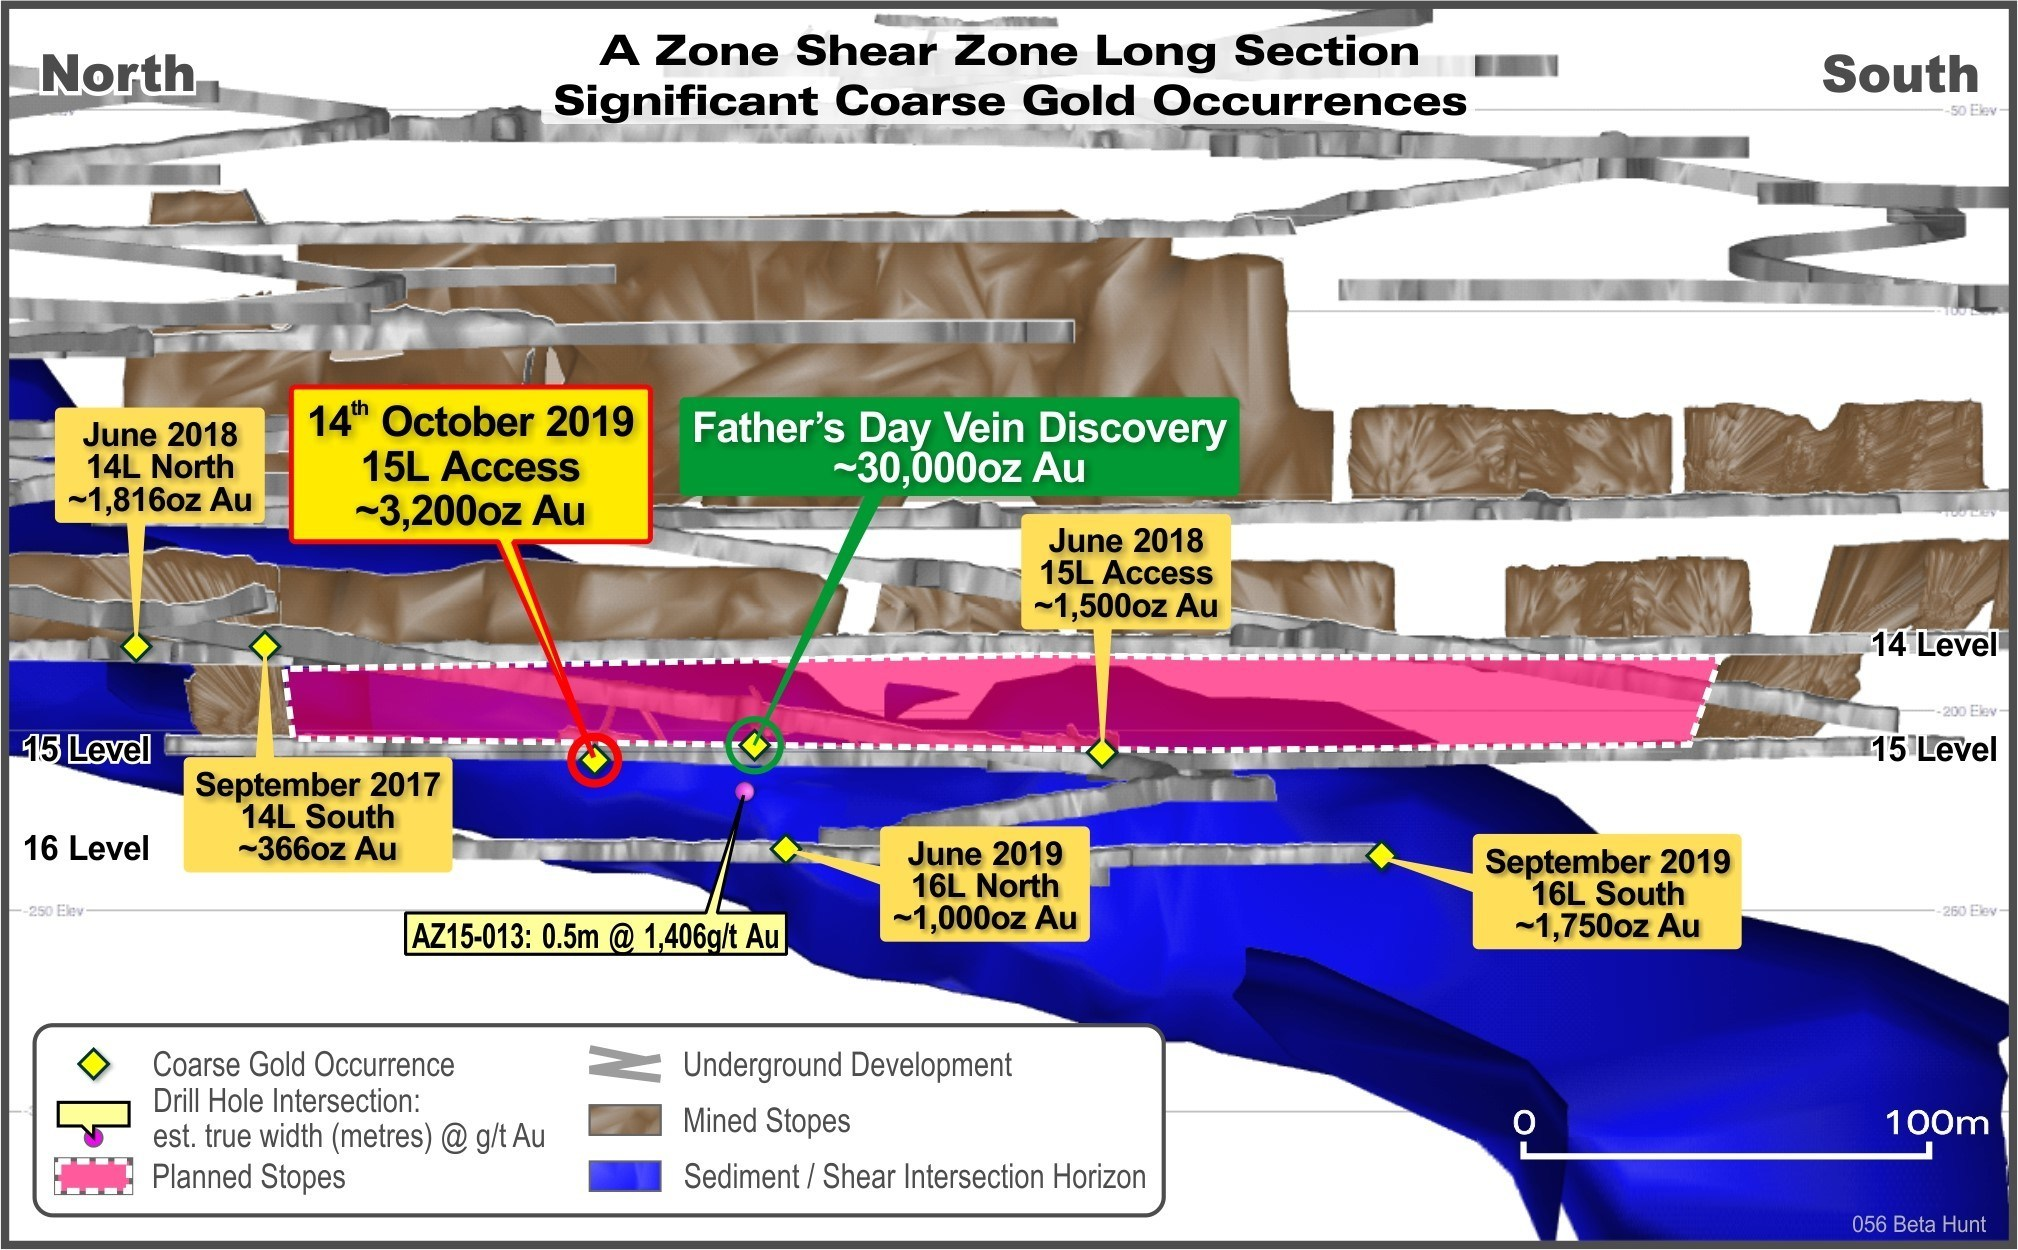 Figure 3: A Zone Long Section Looking East showing locations of coarse gold occurrences (CNW Group/RNC Minerals)